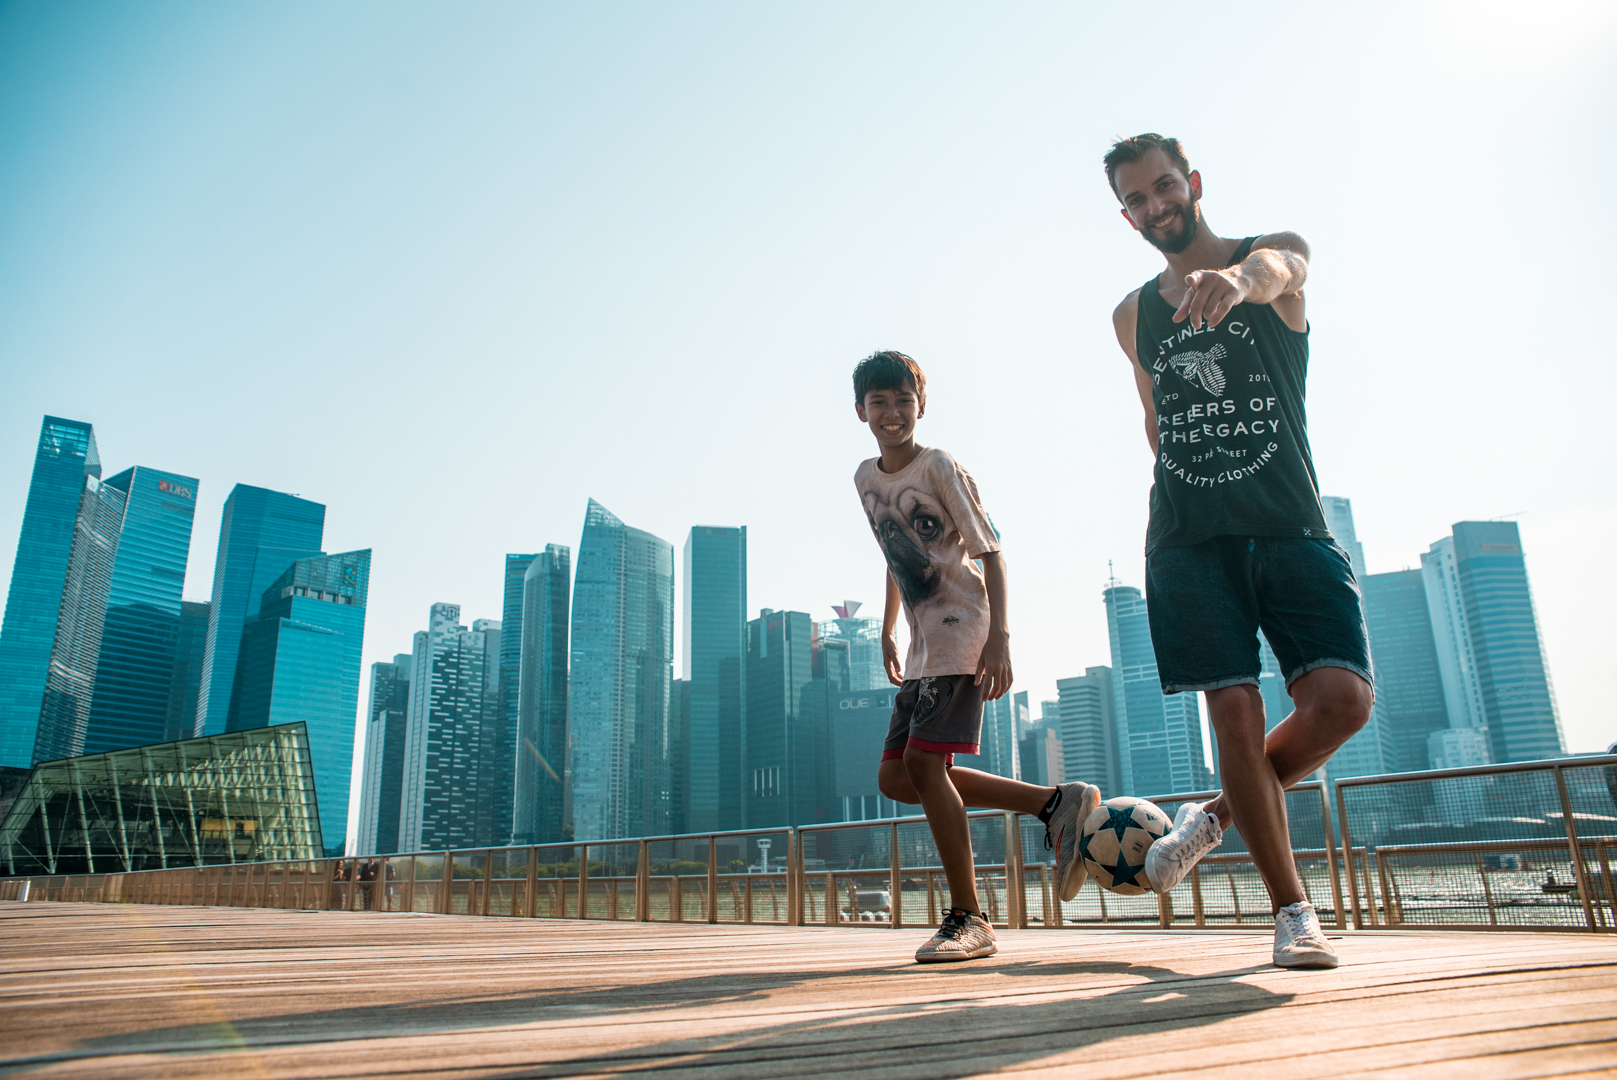 Meeting up with the local freestyle football community in Singapore.